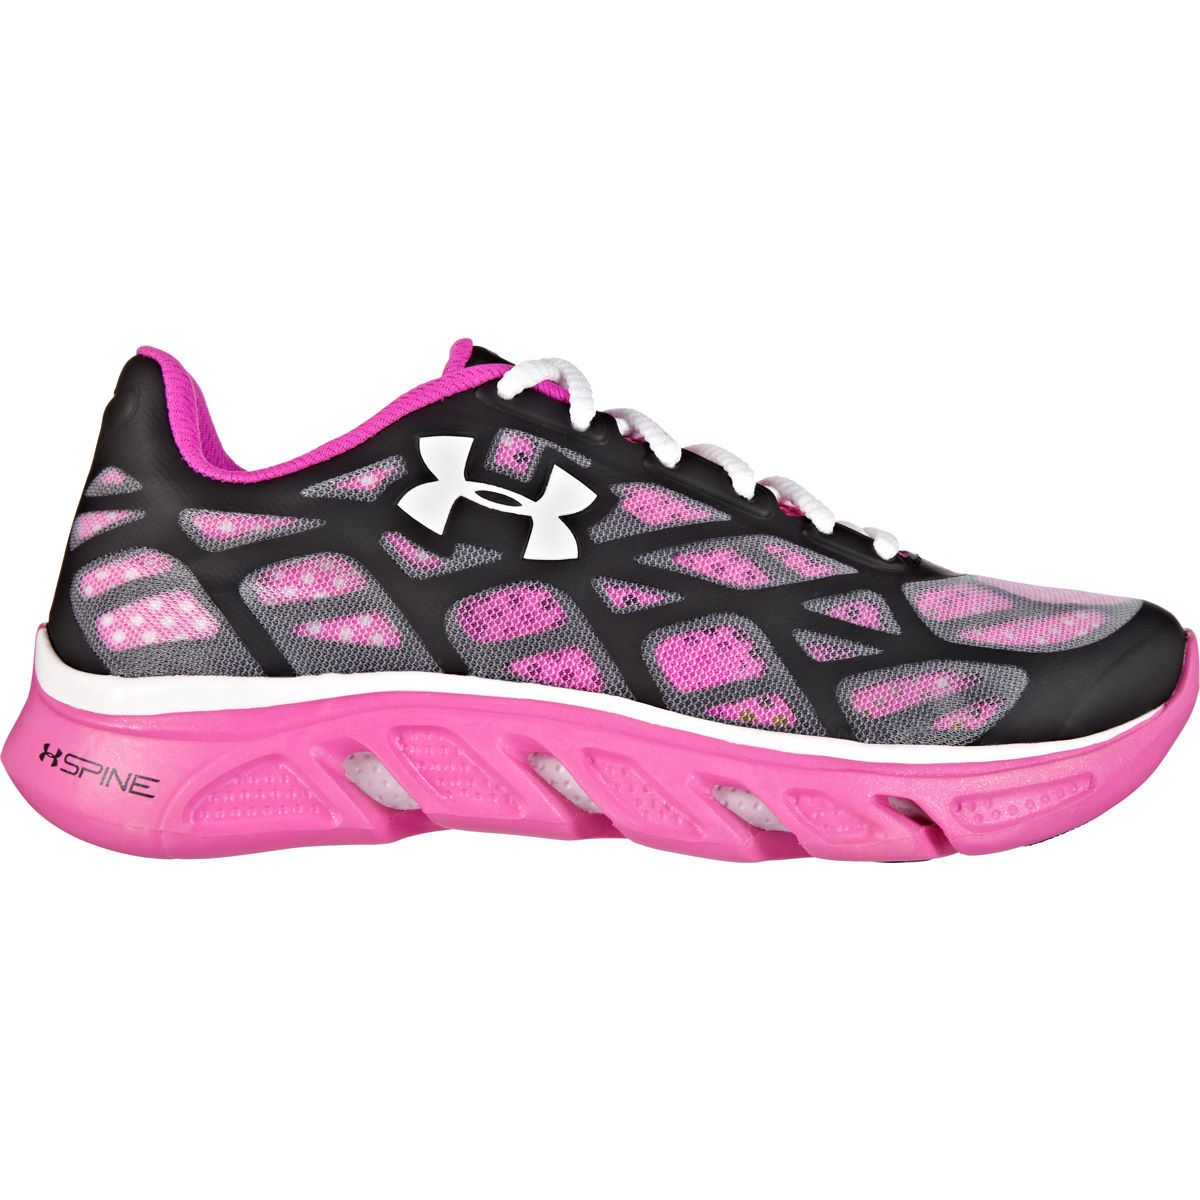 Under Armour Spine Vice Running Shoes